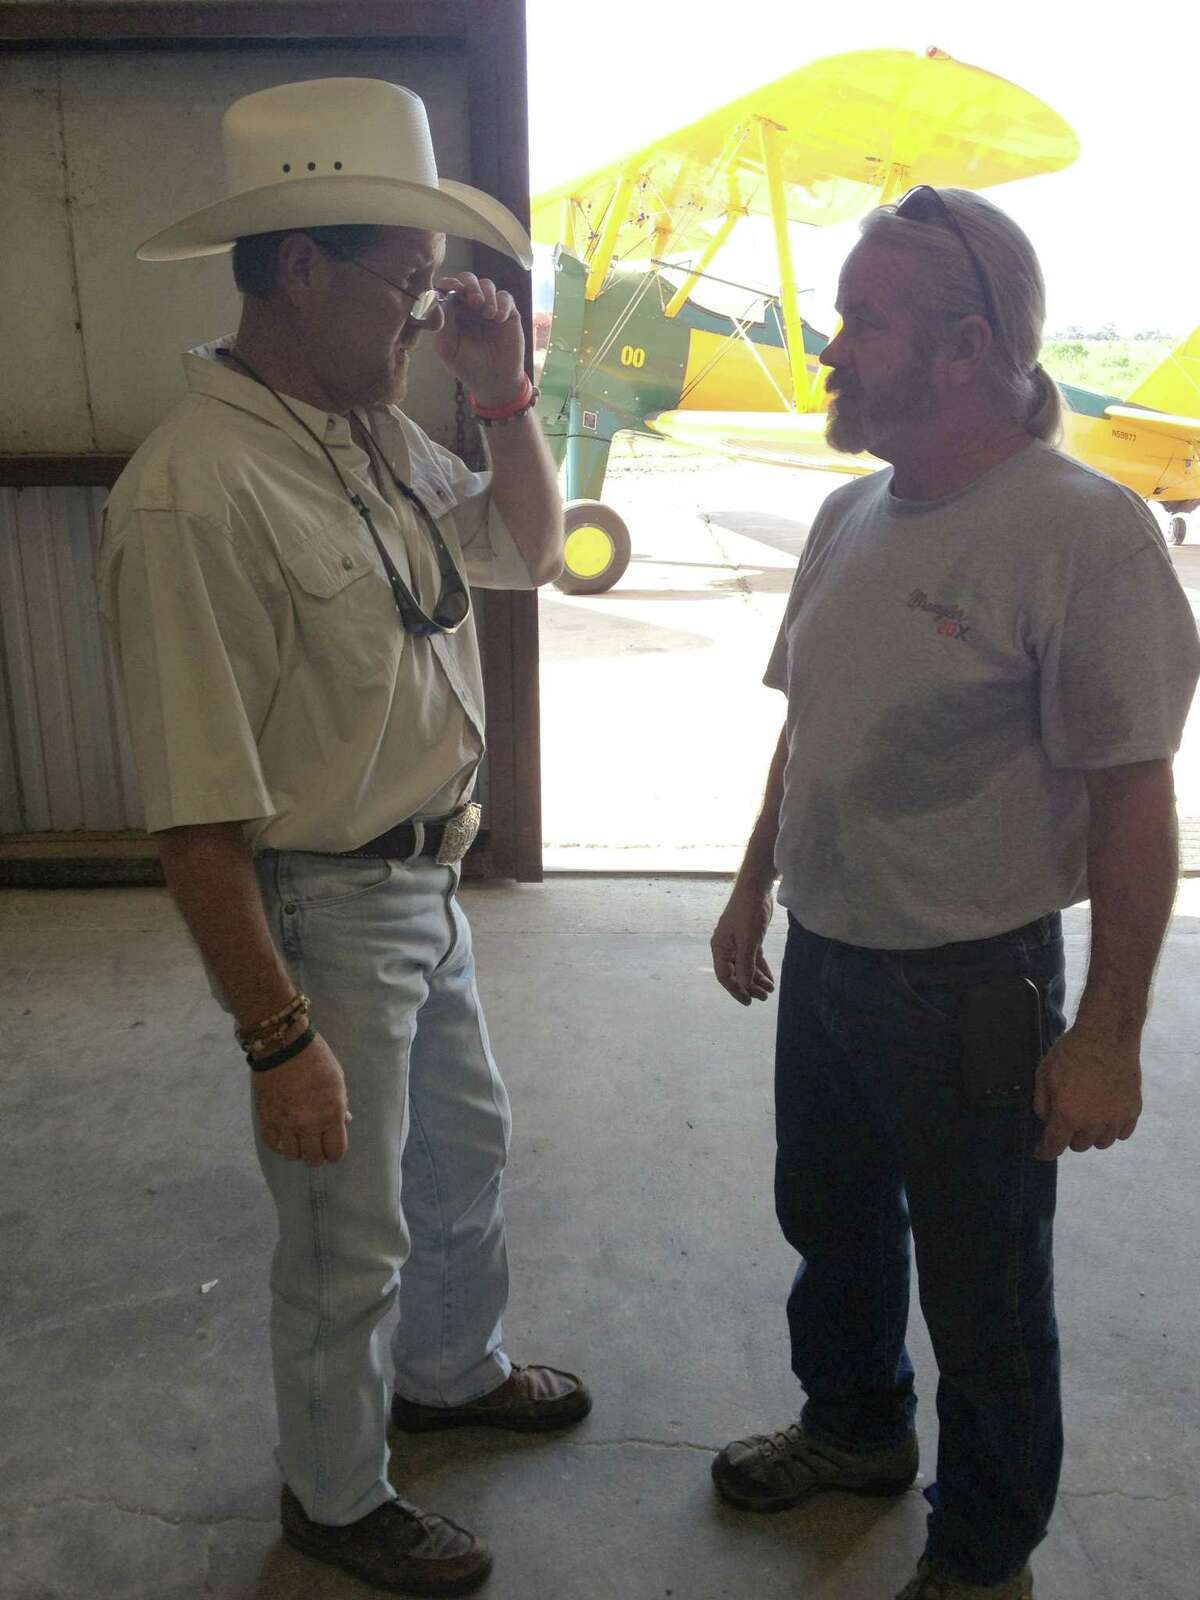 David Mitchell, left, talks with mechanic Brad CAlloway about a new distribution system being installed in their planes. In the background is a Stearman plane, one of the first planes used by the company to seed Southeast Texas' rice fields by air.